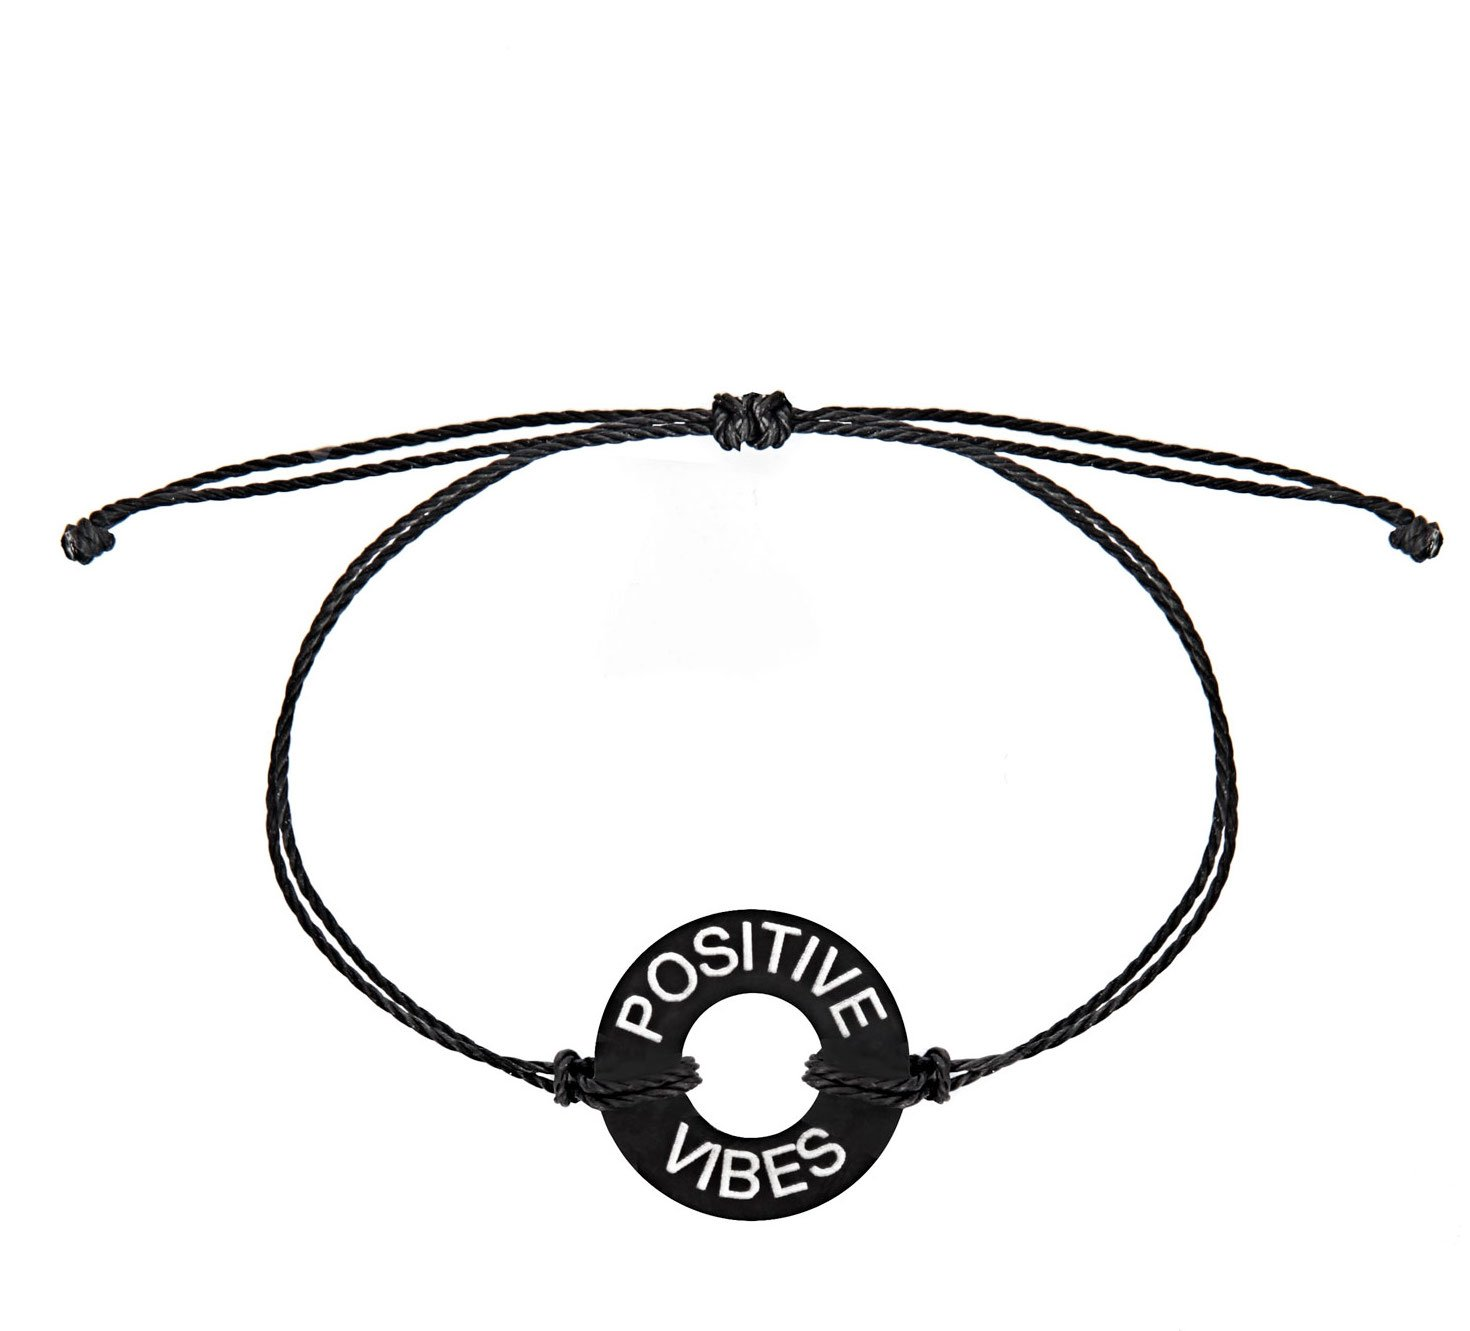 Life Token Custom Engraved Message Positive Vibes Novelty Jewelry Bracelet for Both Men and Women (Black Token with Silver Engraving)